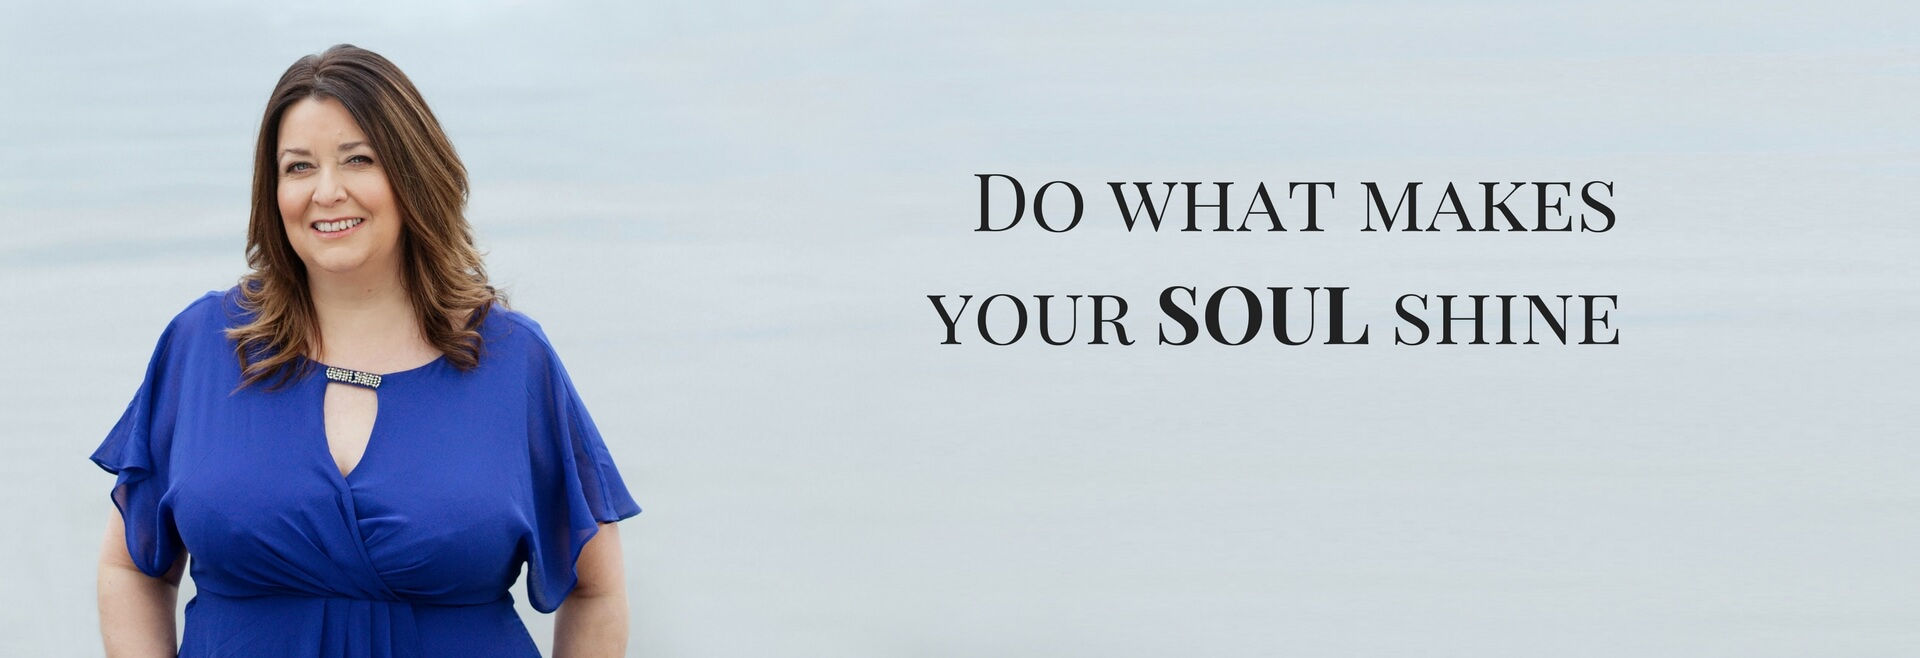 Linda Thomson Do what makes your soul shine banner